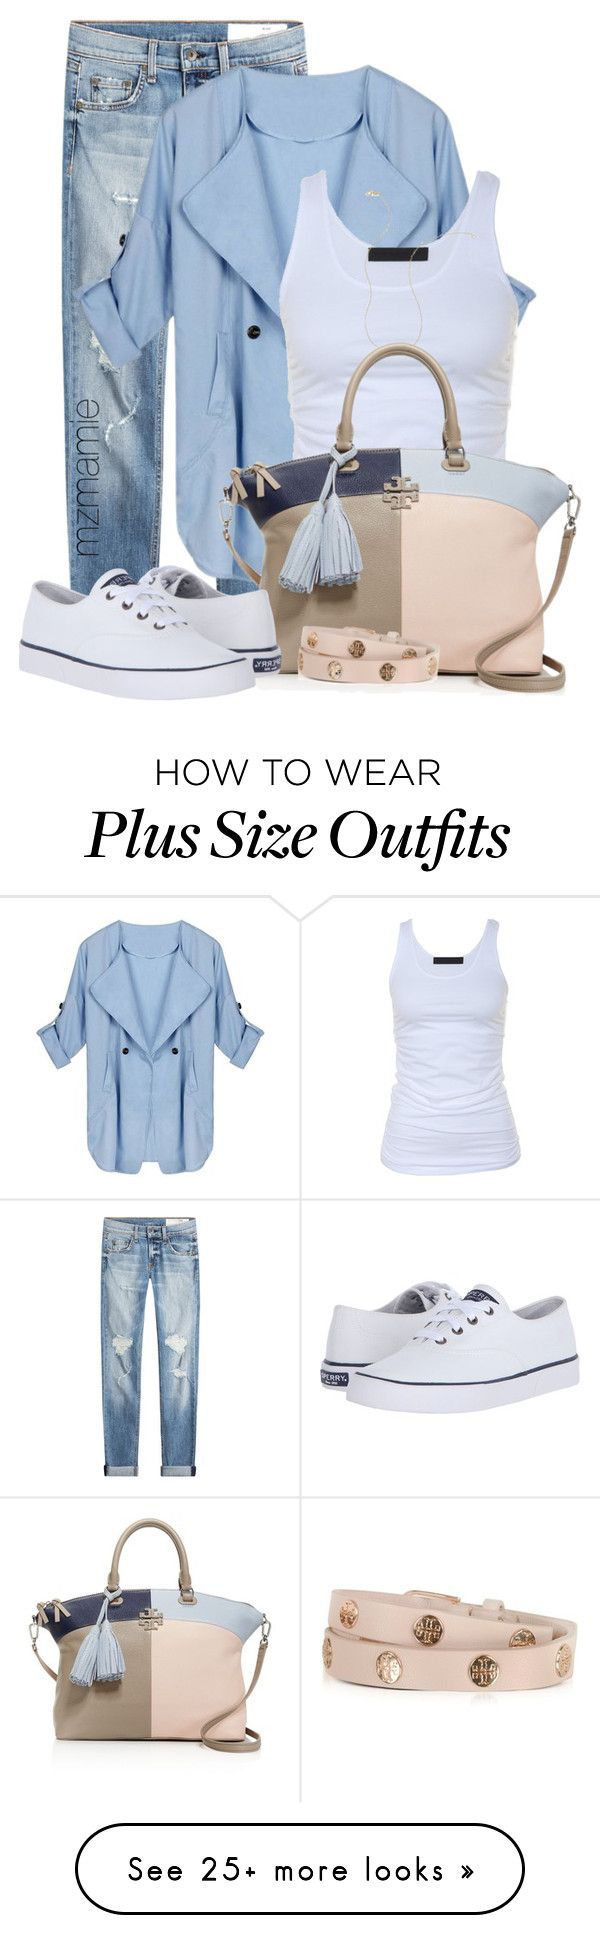 """Untitled #2780"" by mzmamie on Polyvore featuring rag & bone, Tusnelda Bloch, Wish by Amanda Rose, Tory Burch and Sperry"